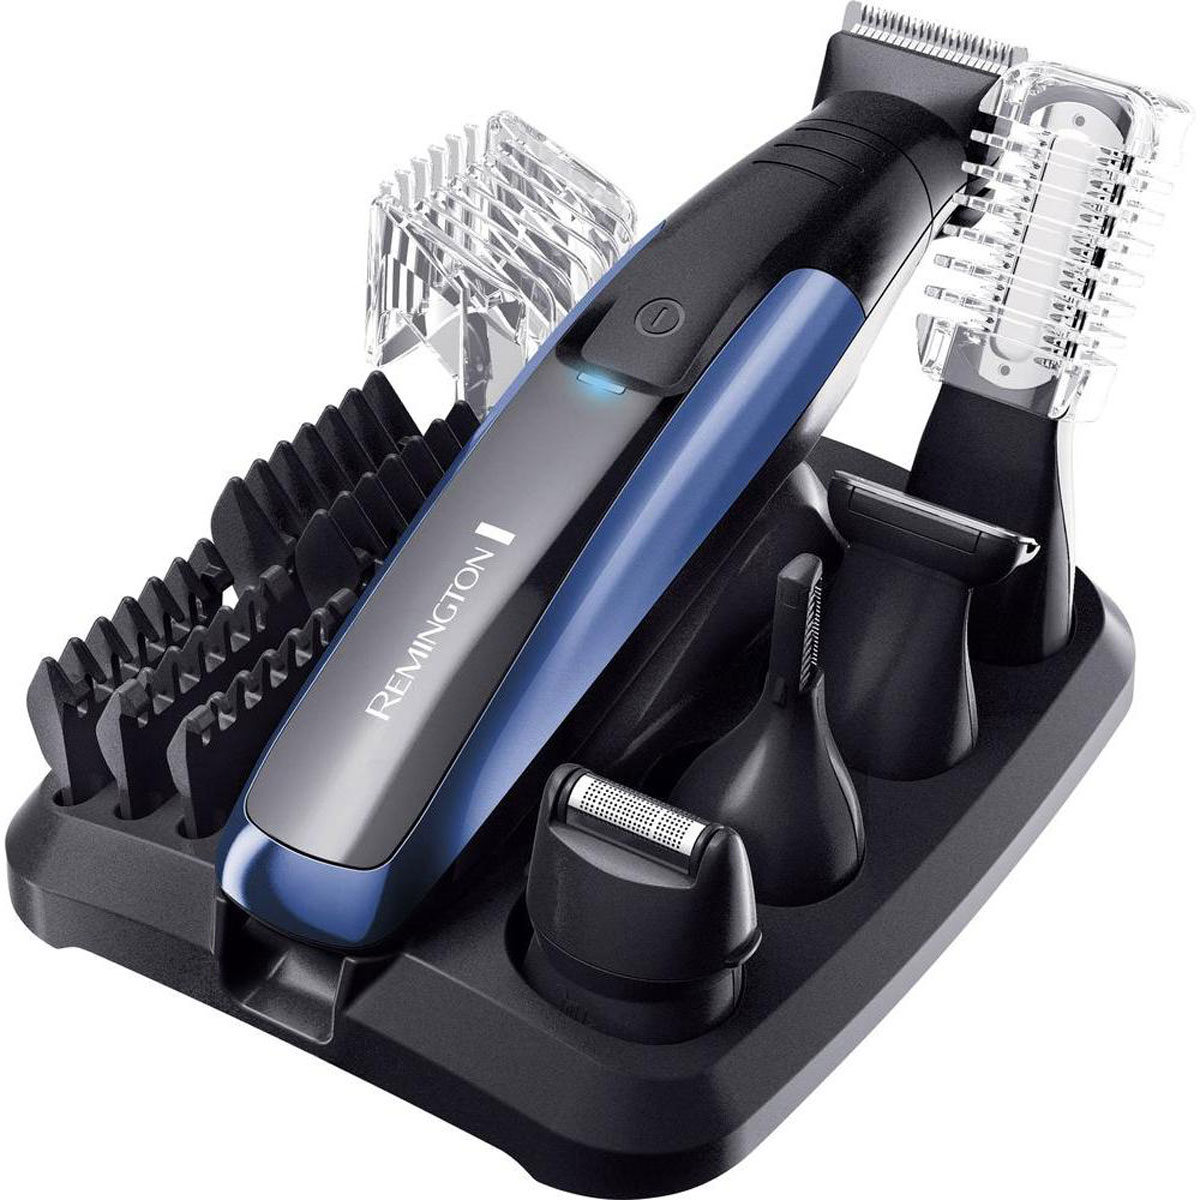 триммер remington pg6030 e51 grooming kit Remington PG6160 триммер